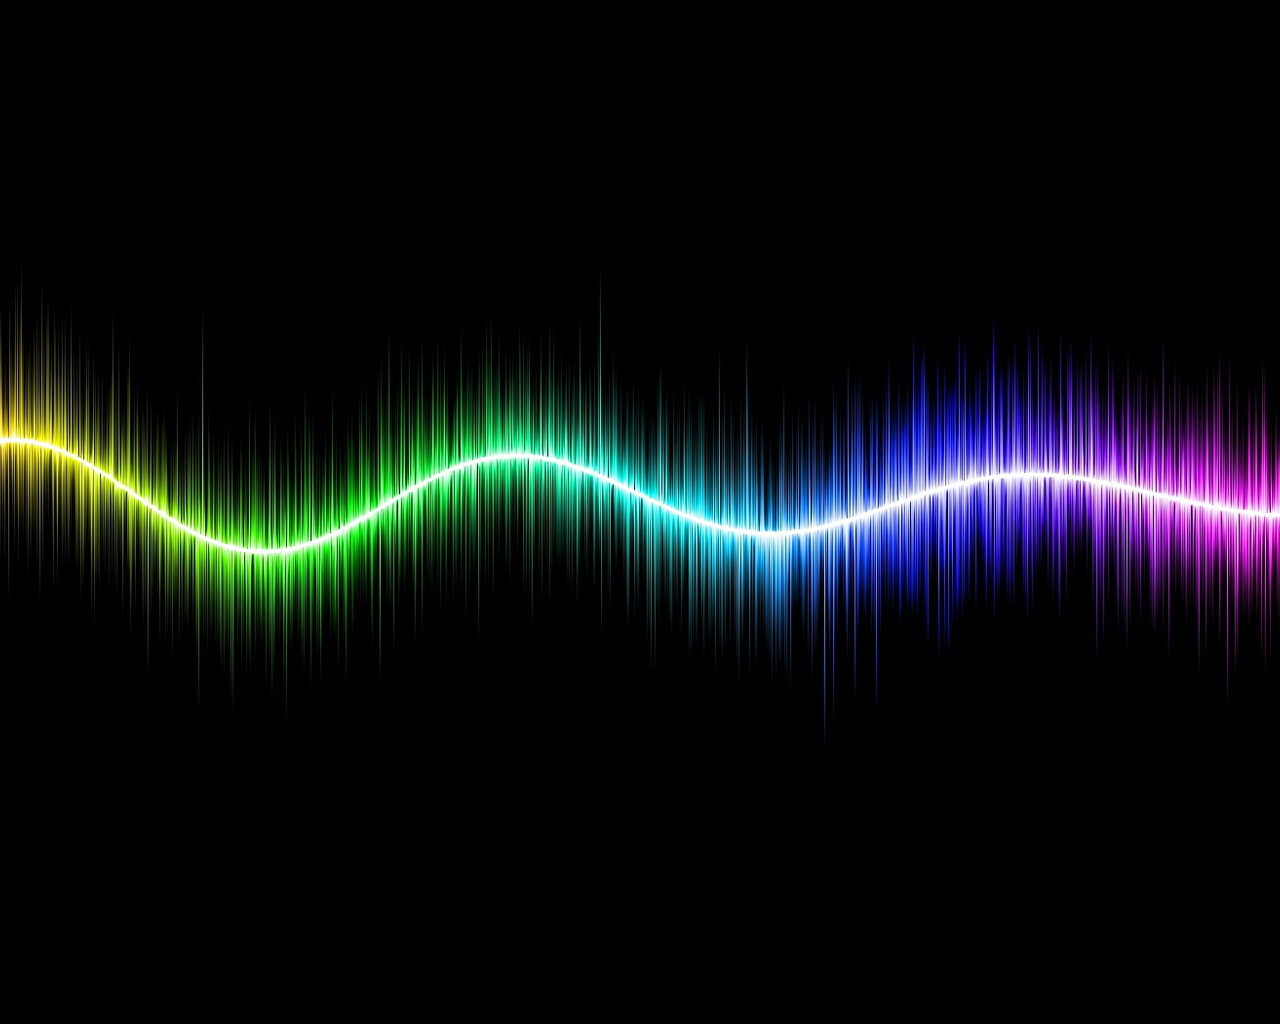 Wallpaper Sound Waves Wallpaper Sound Waves Wallpaper By 1280x1024